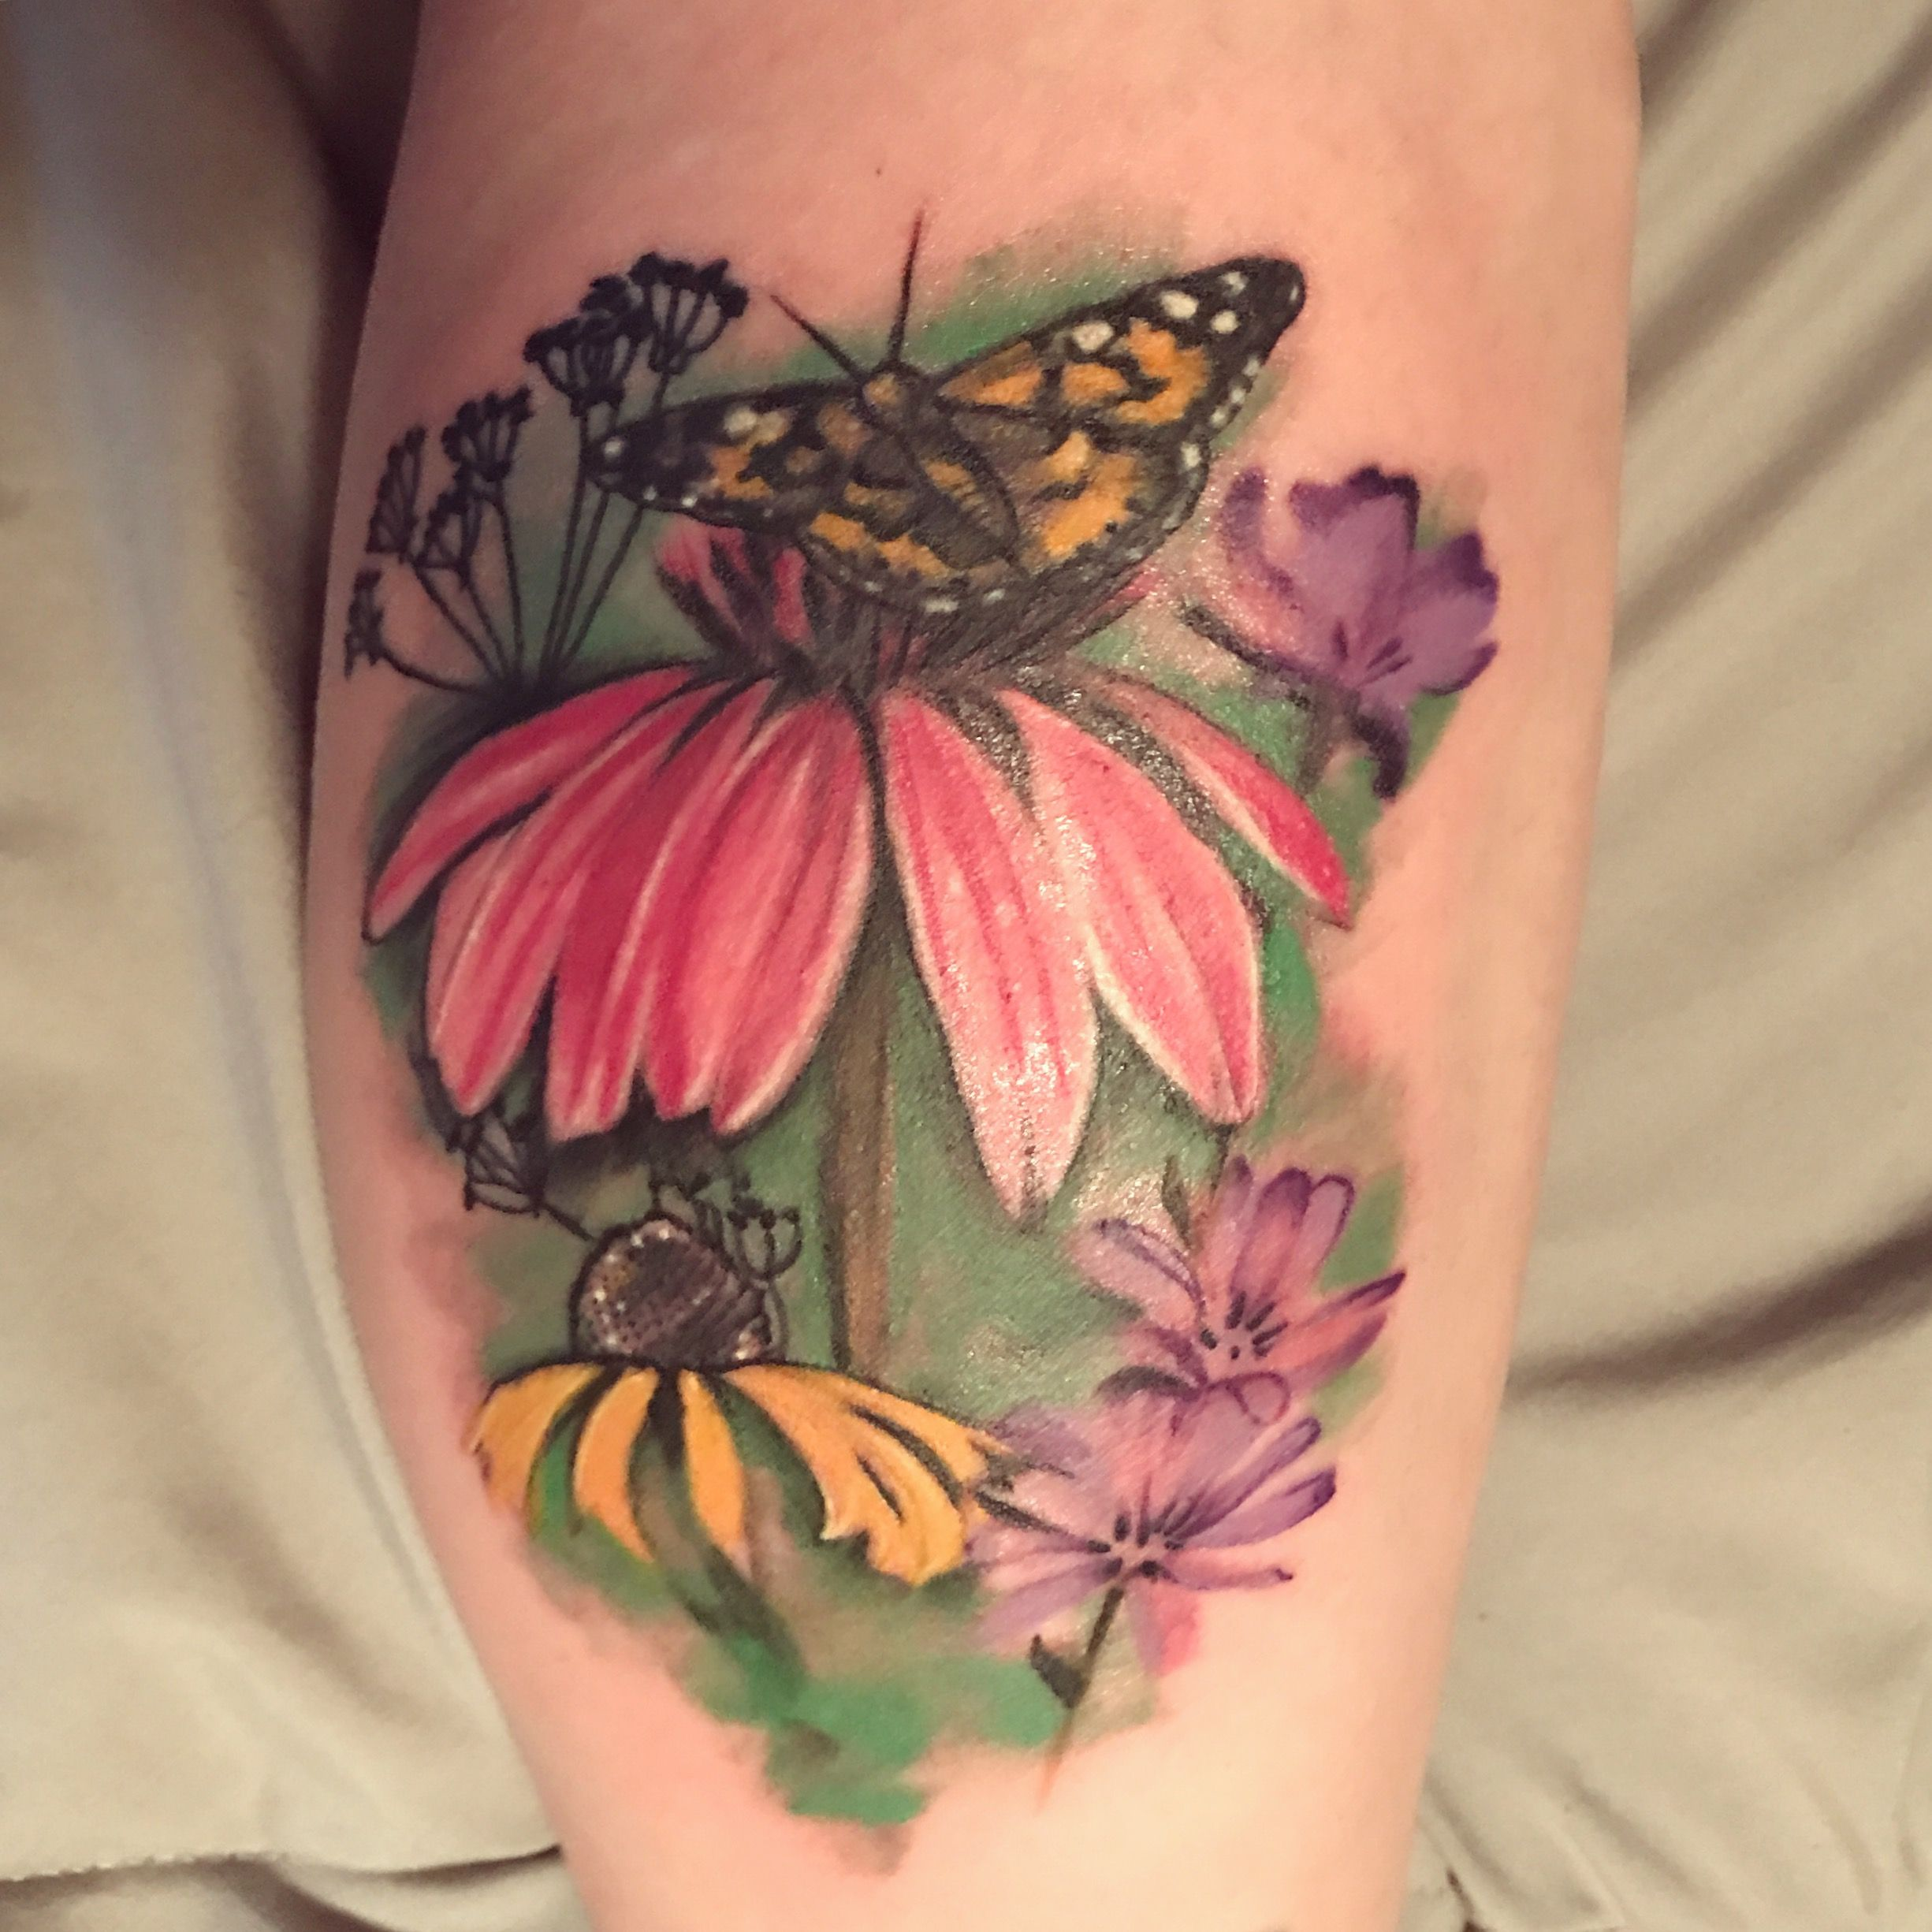 Watercolor Butterfly Garden Tattoo Wildflowers Painted Lady Butterfly Coneflower Echinacea Ch Lace Flower Tattoos Garden Tattoos Rose And Butterfly Tattoo